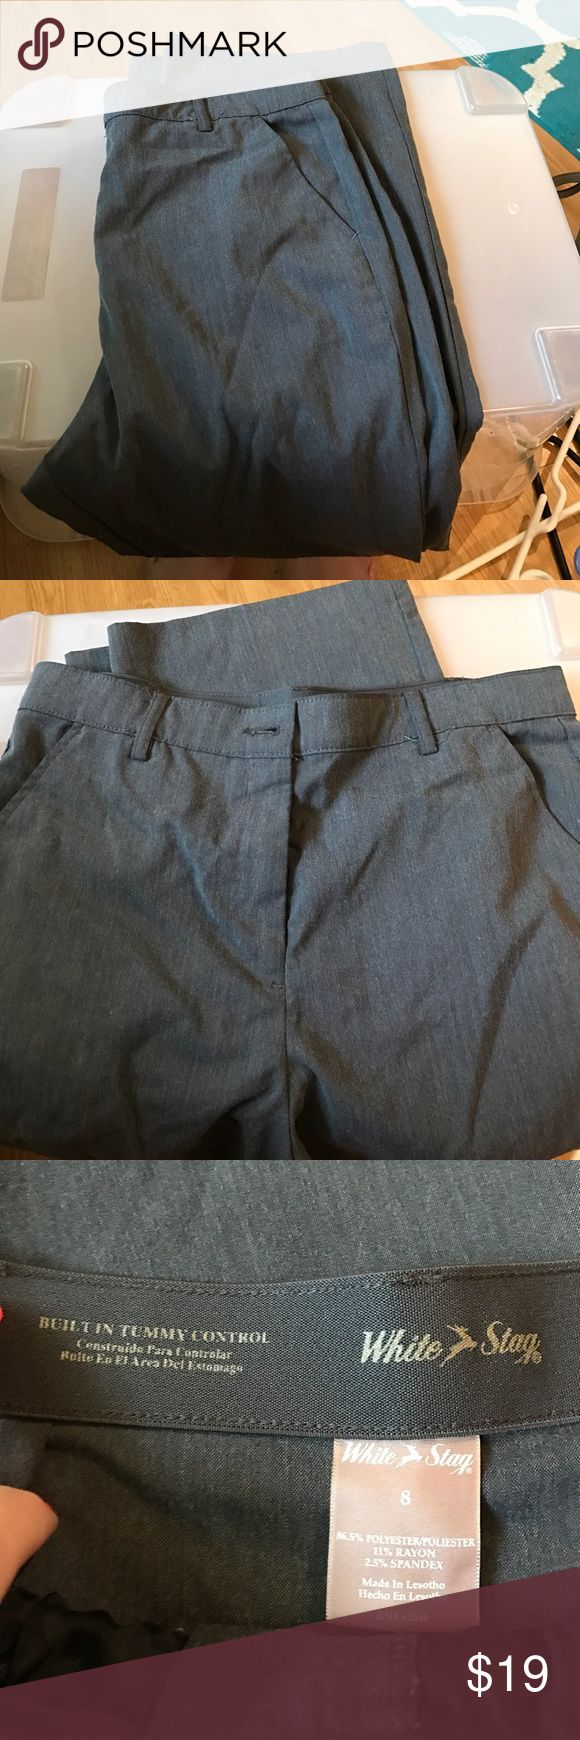 White stag size 8 gray pants. White stag gray pants, size 8, built in tummy control and comfort stretch. White Stag Pants